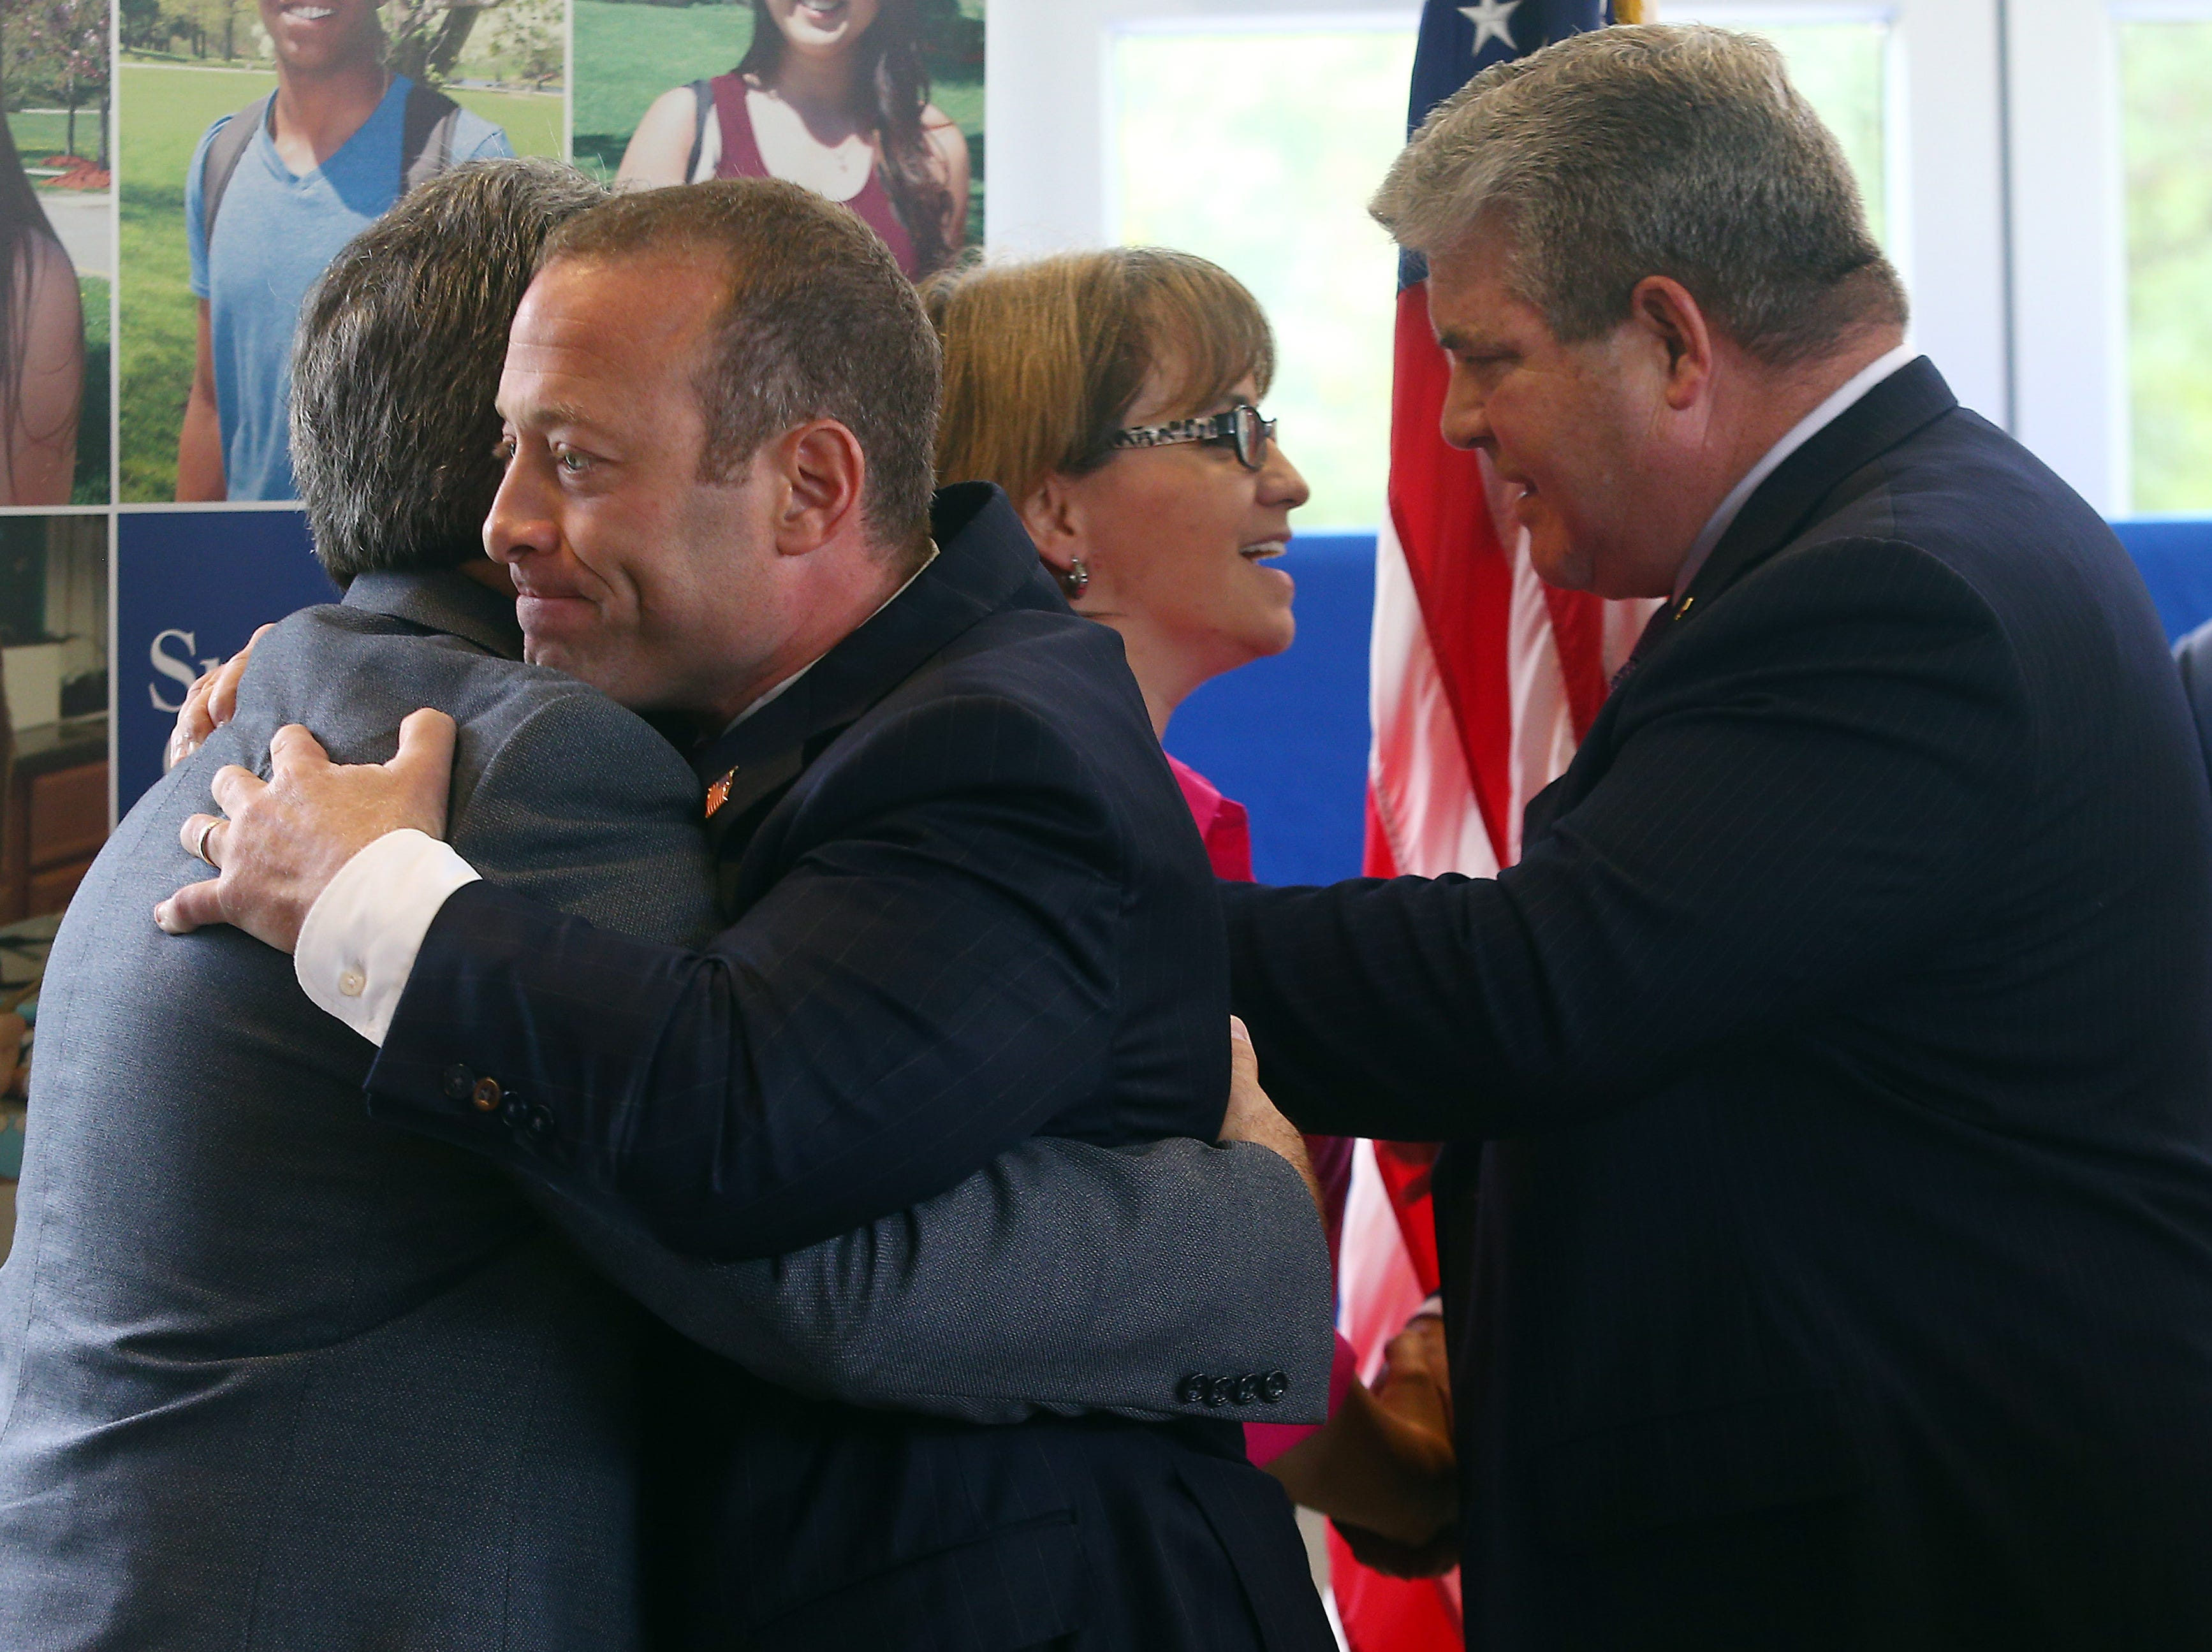 Congressman Josh Gottheimer hugs Adam Stolarsky as Colleen Murch shakes hands with  Senator Steven Oroho after the Stand United Against Hate rally at the Performing Arts Center of Sussex County Community College. Hampton Township residents Murch and Stolarsky found vulgar graffiti sprayed on the road in front of their residence. This followed an incident last weekend in which a vandal spray-painted a swastika on their garage and a campaign sign for Rep. Josh Gottheimer. October 2, 2018, Newton, NJ